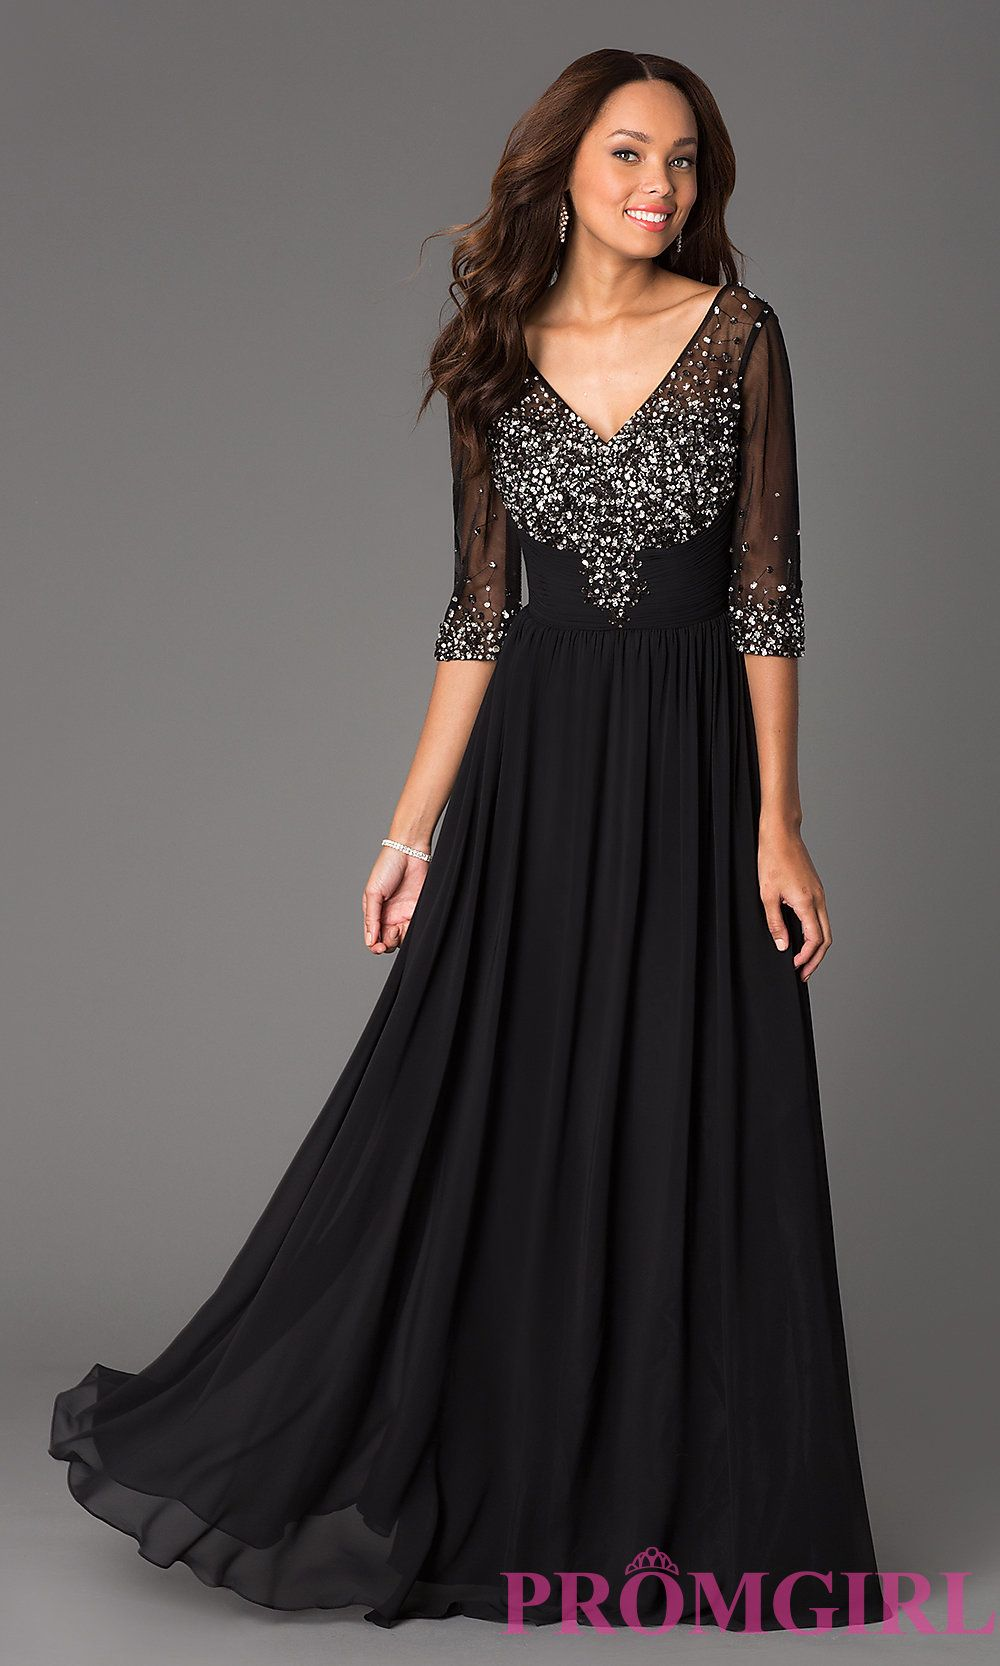 Floor-Length V-Neck Dress with Sheer Sleeves | Long prom dresses ...